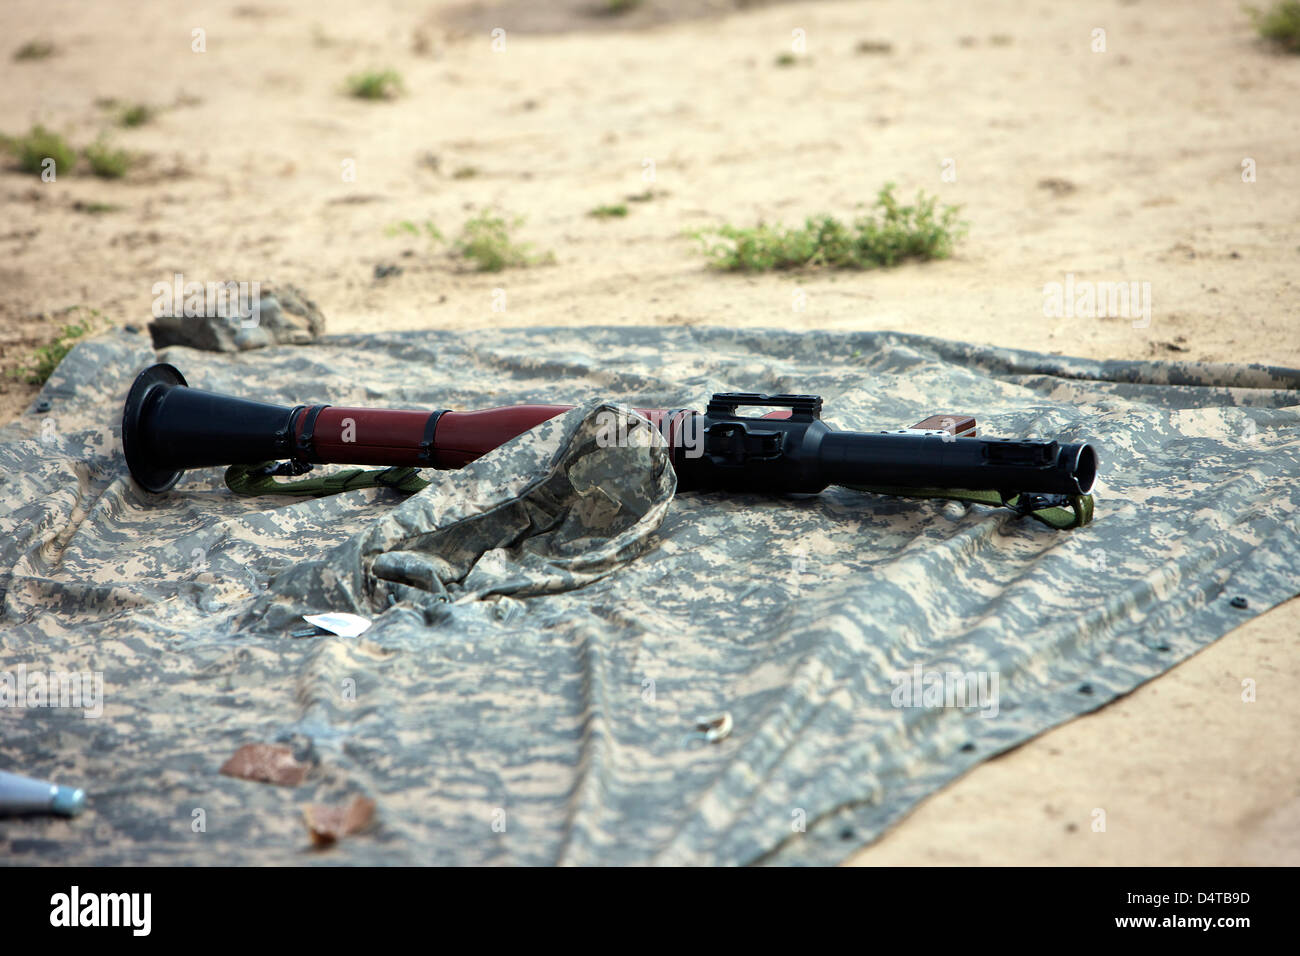 A rocket-propelled grenade launcher. - Stock Image